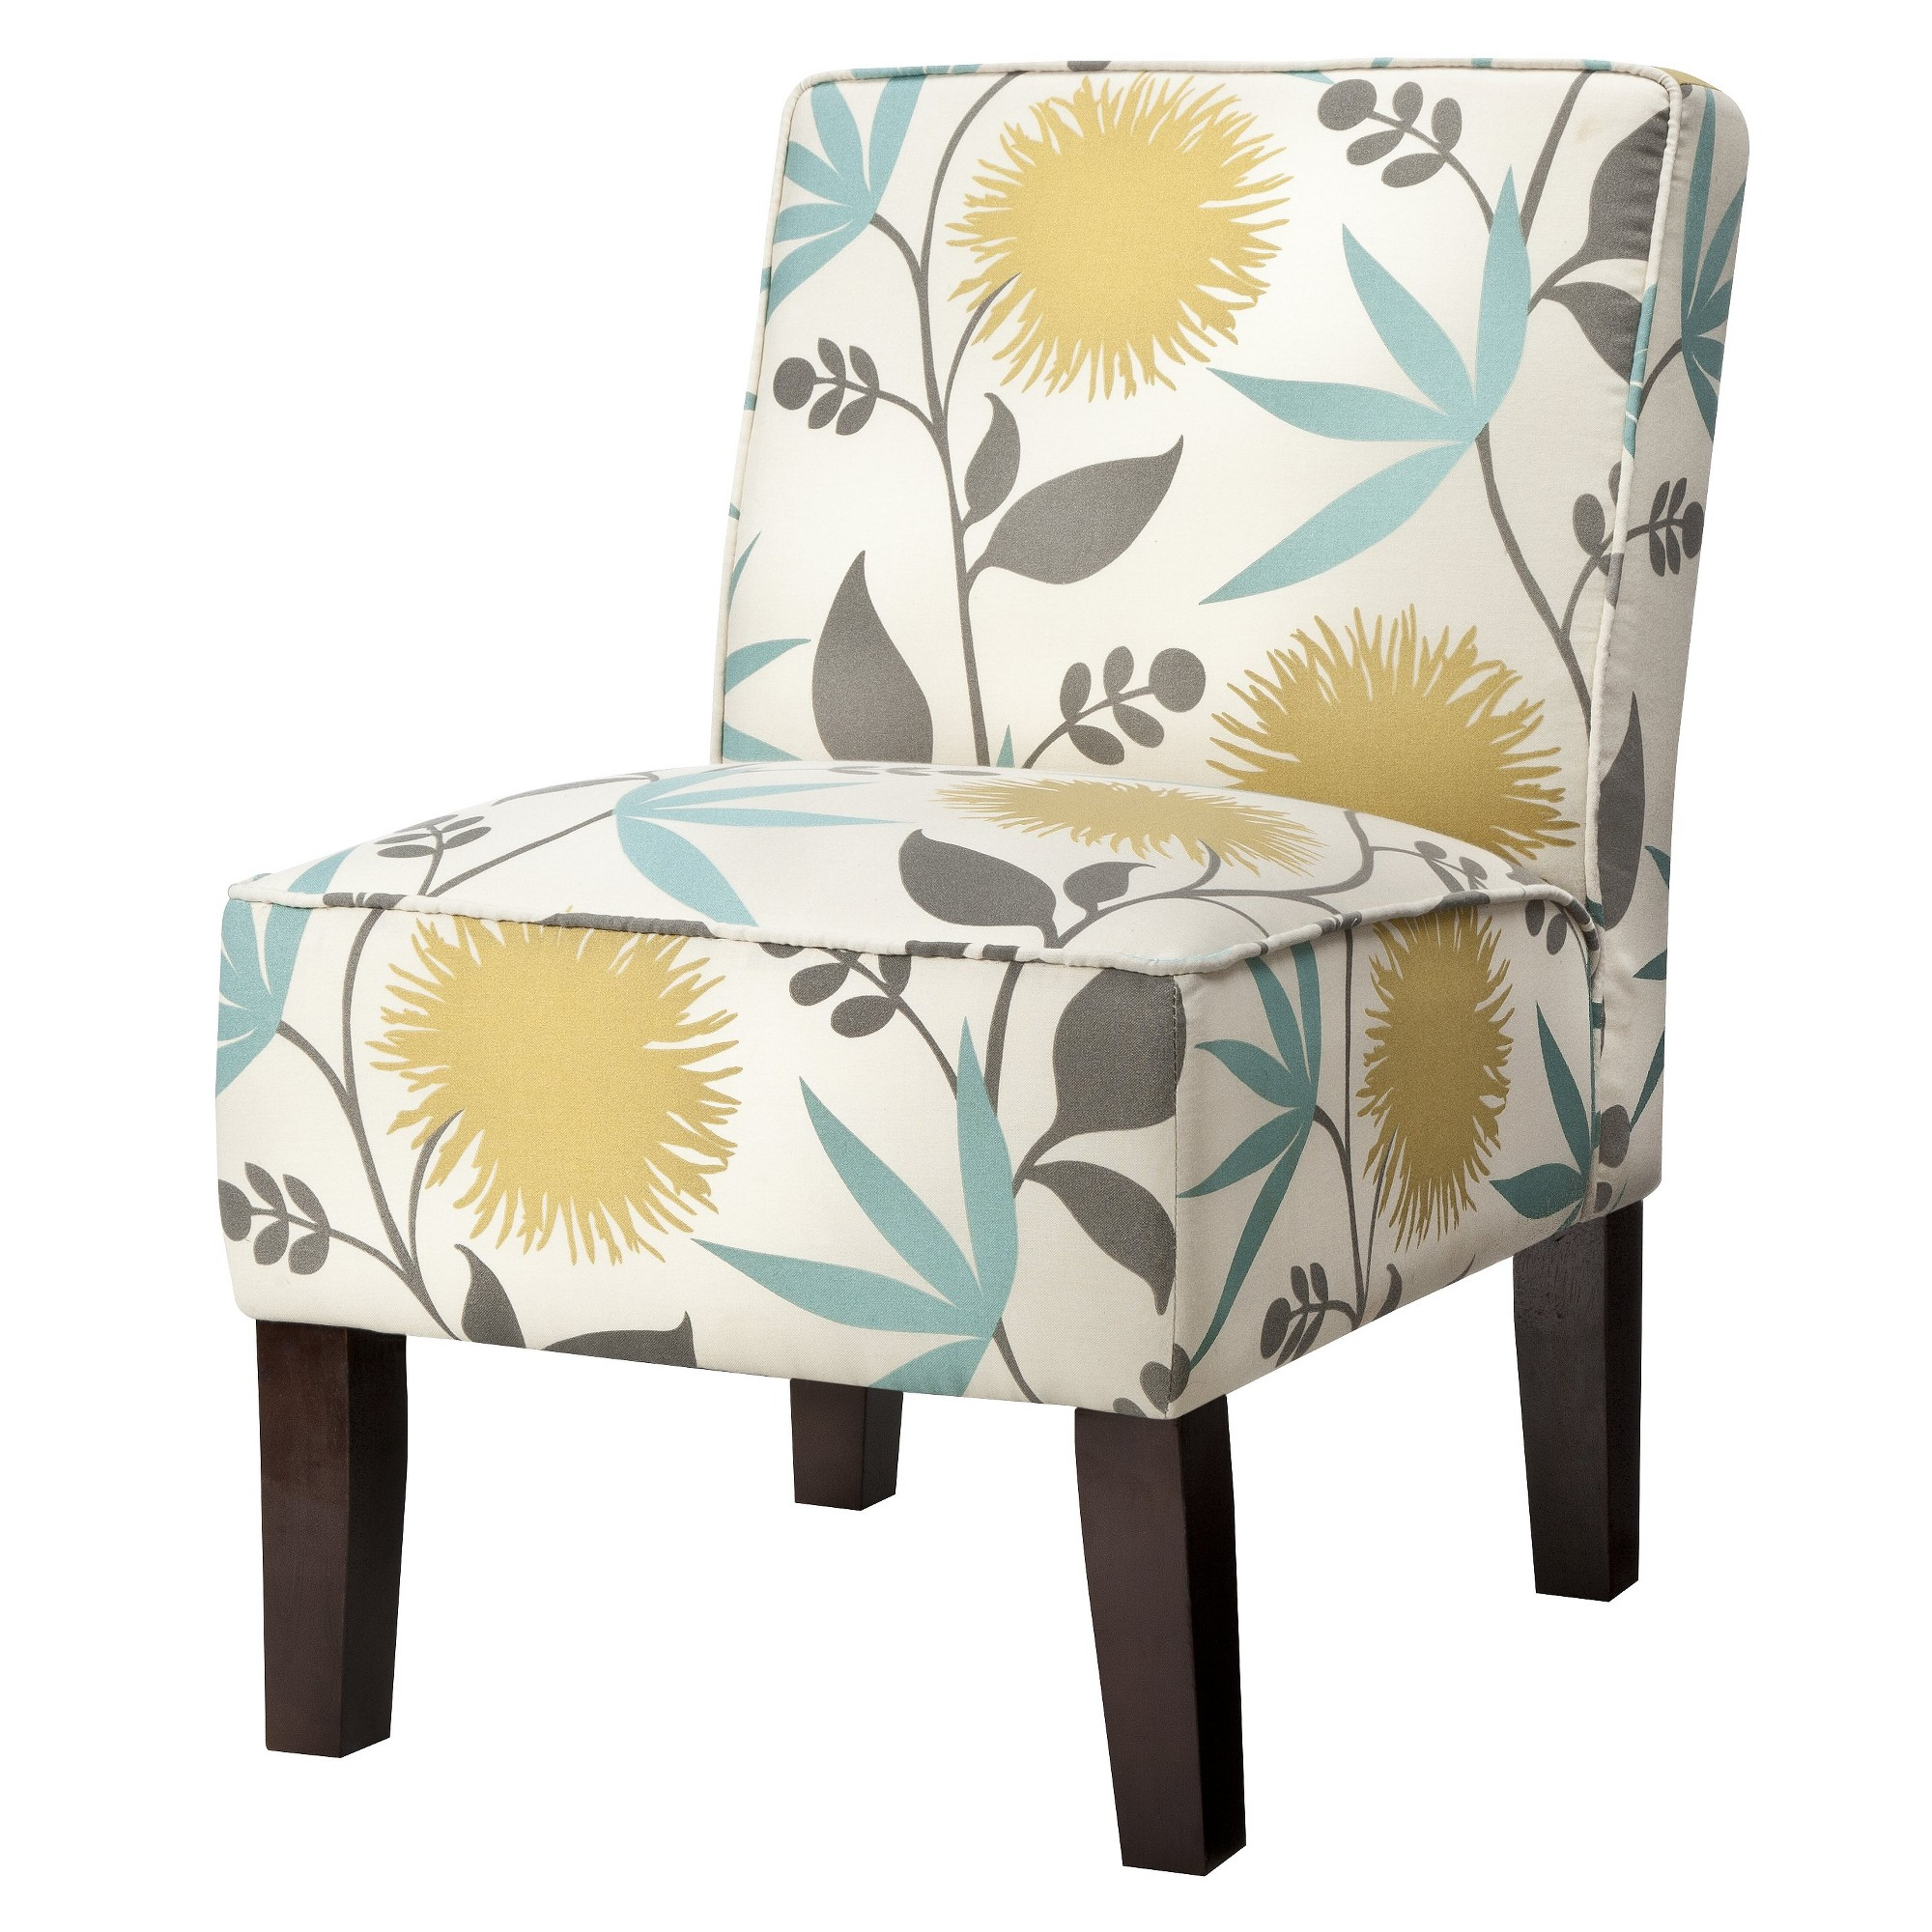 Burke Accent Print Slipper Chair – Polly Aegean Regarding Armless Upholstered Slipper Chairs (View 3 of 15)